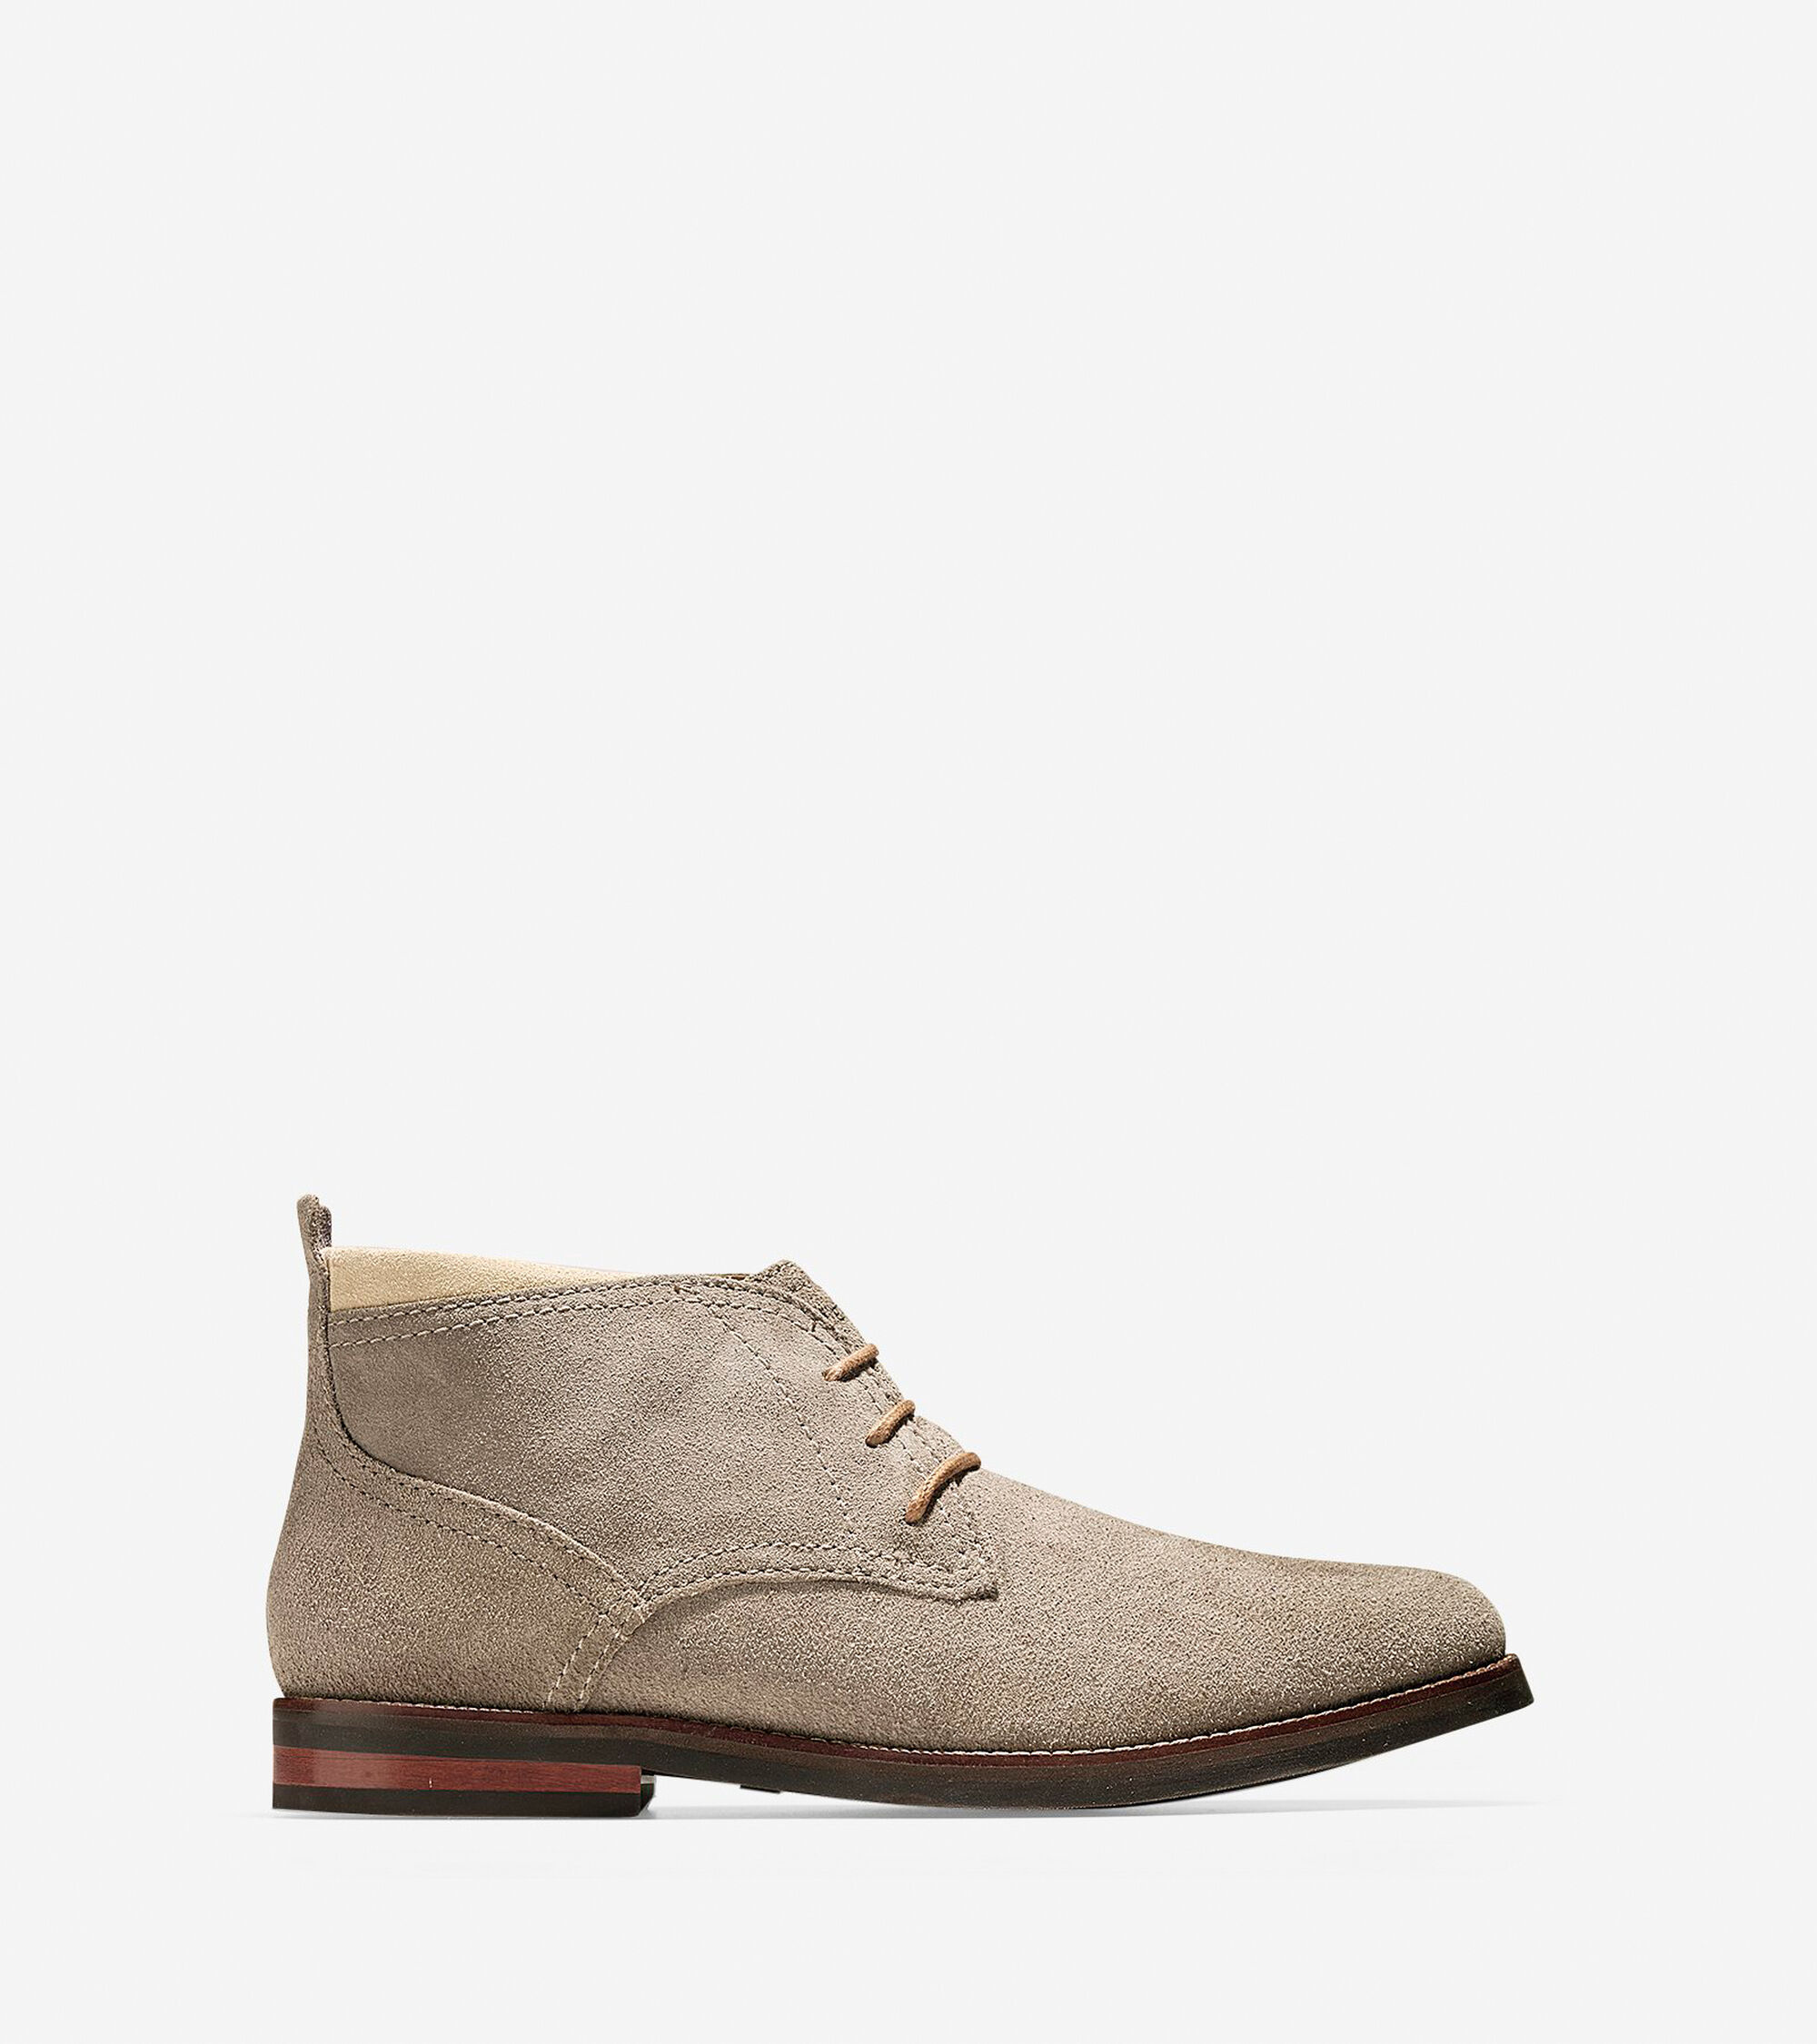 Chukka in rich leather and suede uppers. Partial leather lining. Rubber outsole with texture for extra traction.